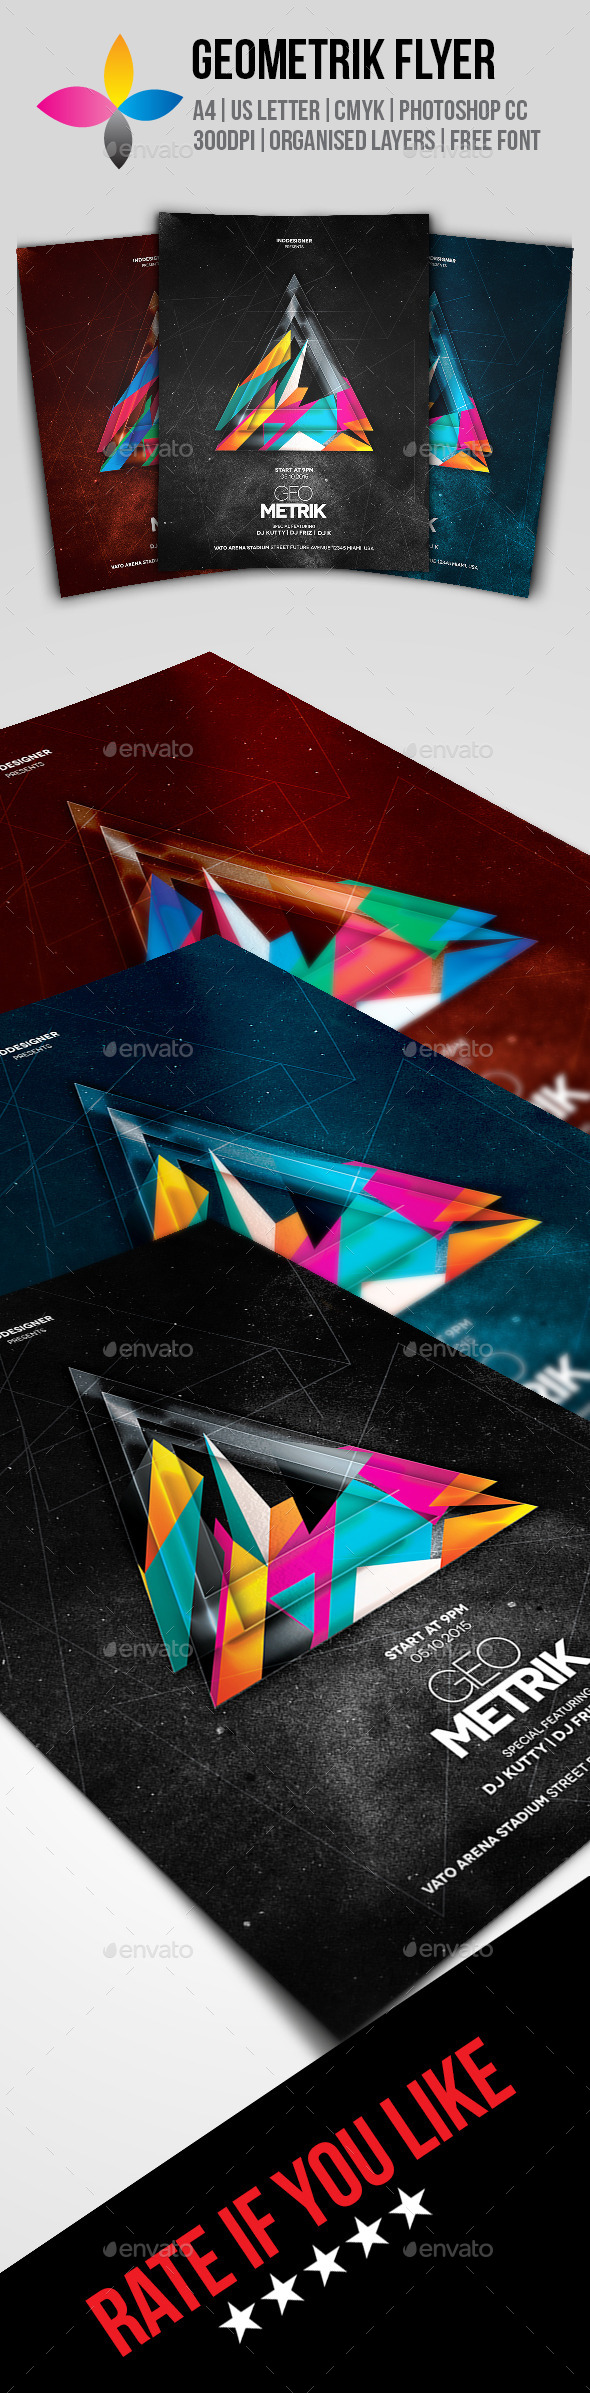 GraphicRiver Geometrik Flyer 10024074